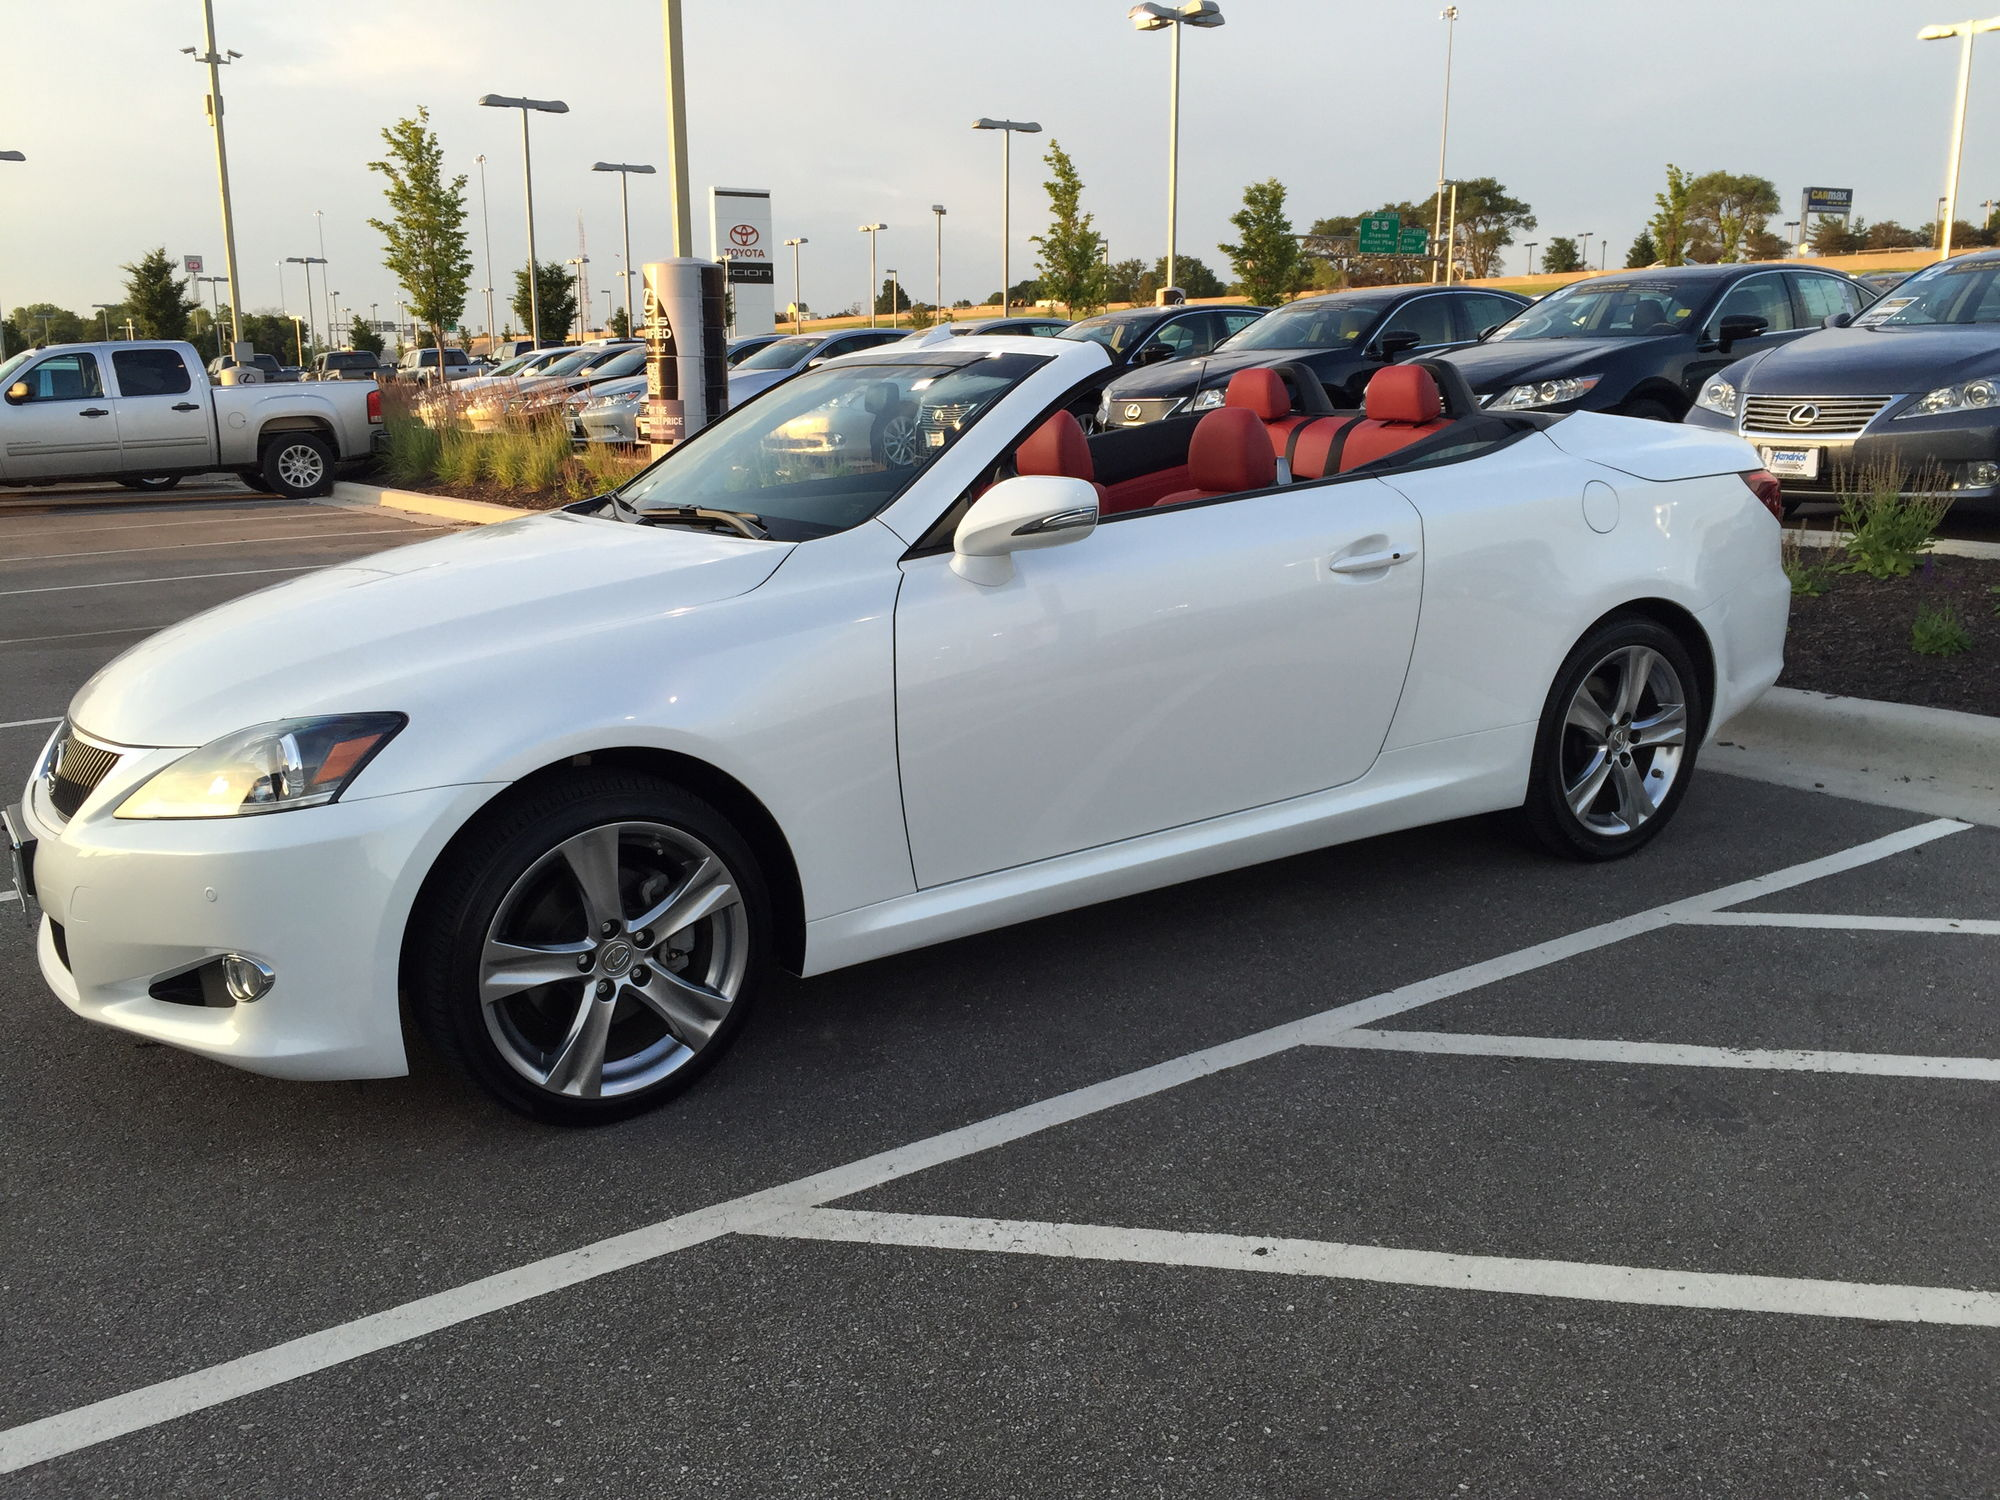 Wel e to Club Lexus IS C owner roll call & member introduction